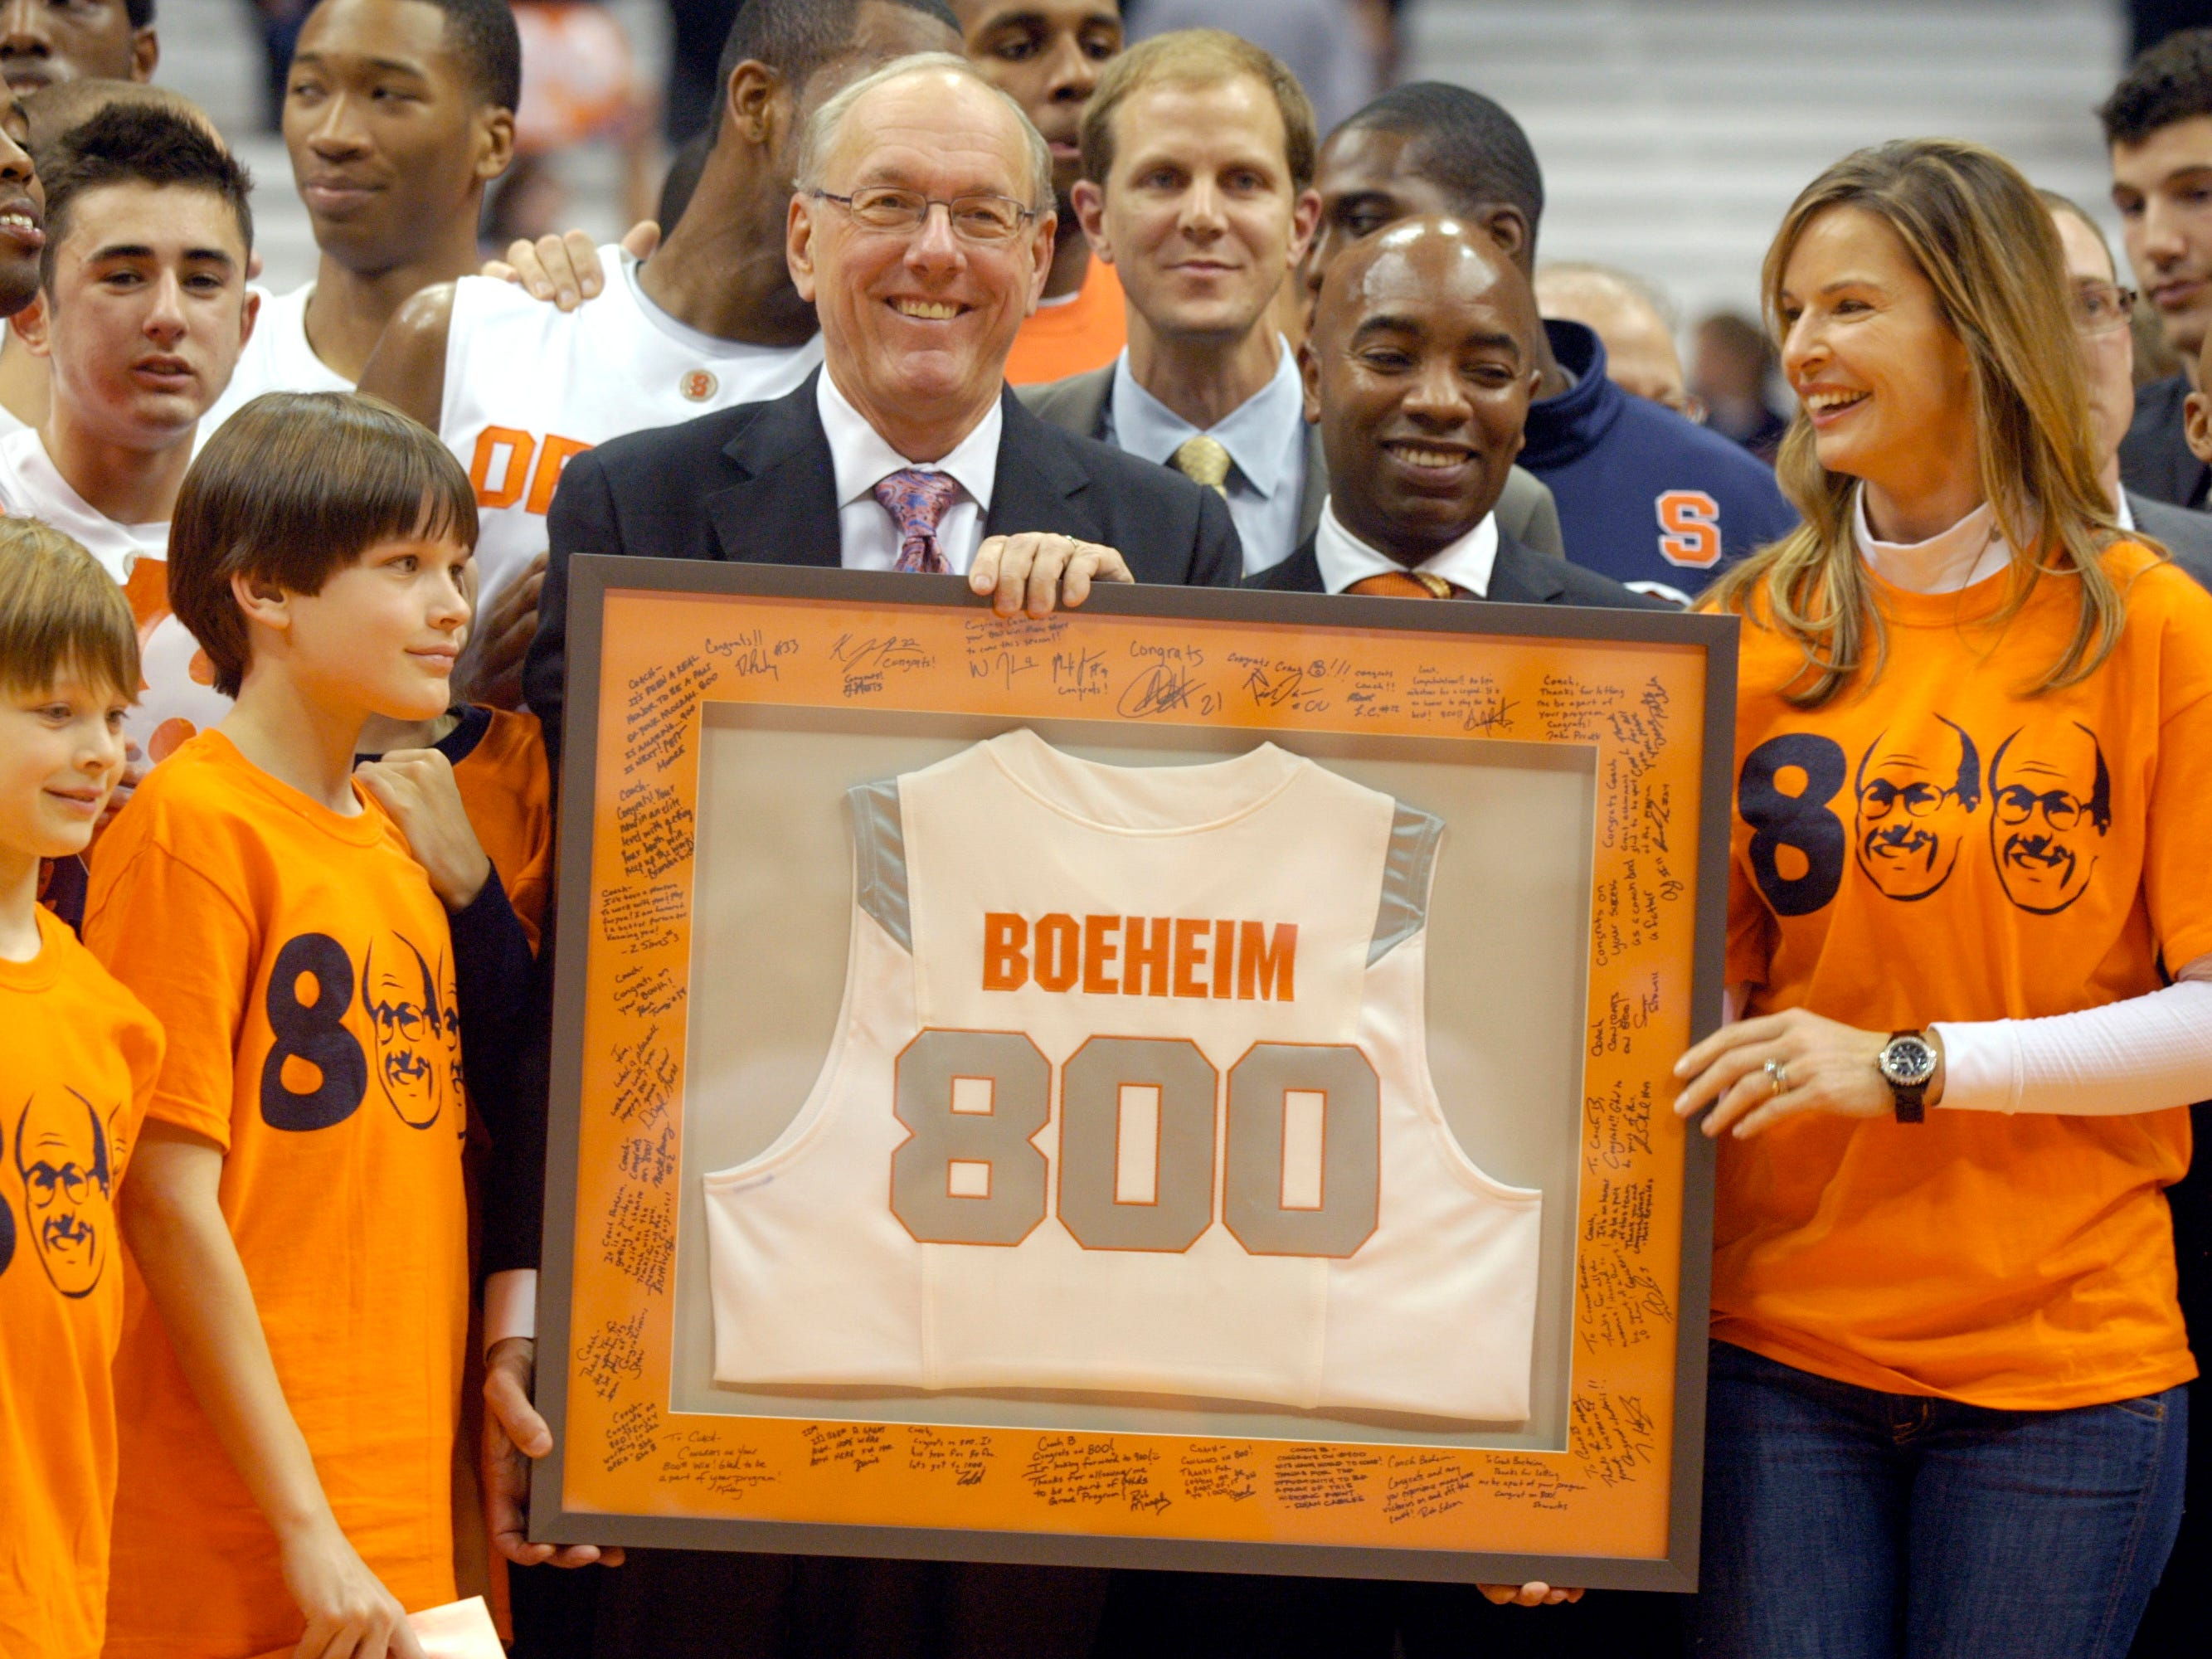 2009: Syracuse head coach Jim Boeheim, center, celebrates his 800th win after defeating Albany 75-43 in the Coaches vs. Cancer tournament game in NCAA college basketball in Syracuse, N.Y., Monday, Nov. 9, 2009. (AP Photo/Kevin Rivoli)